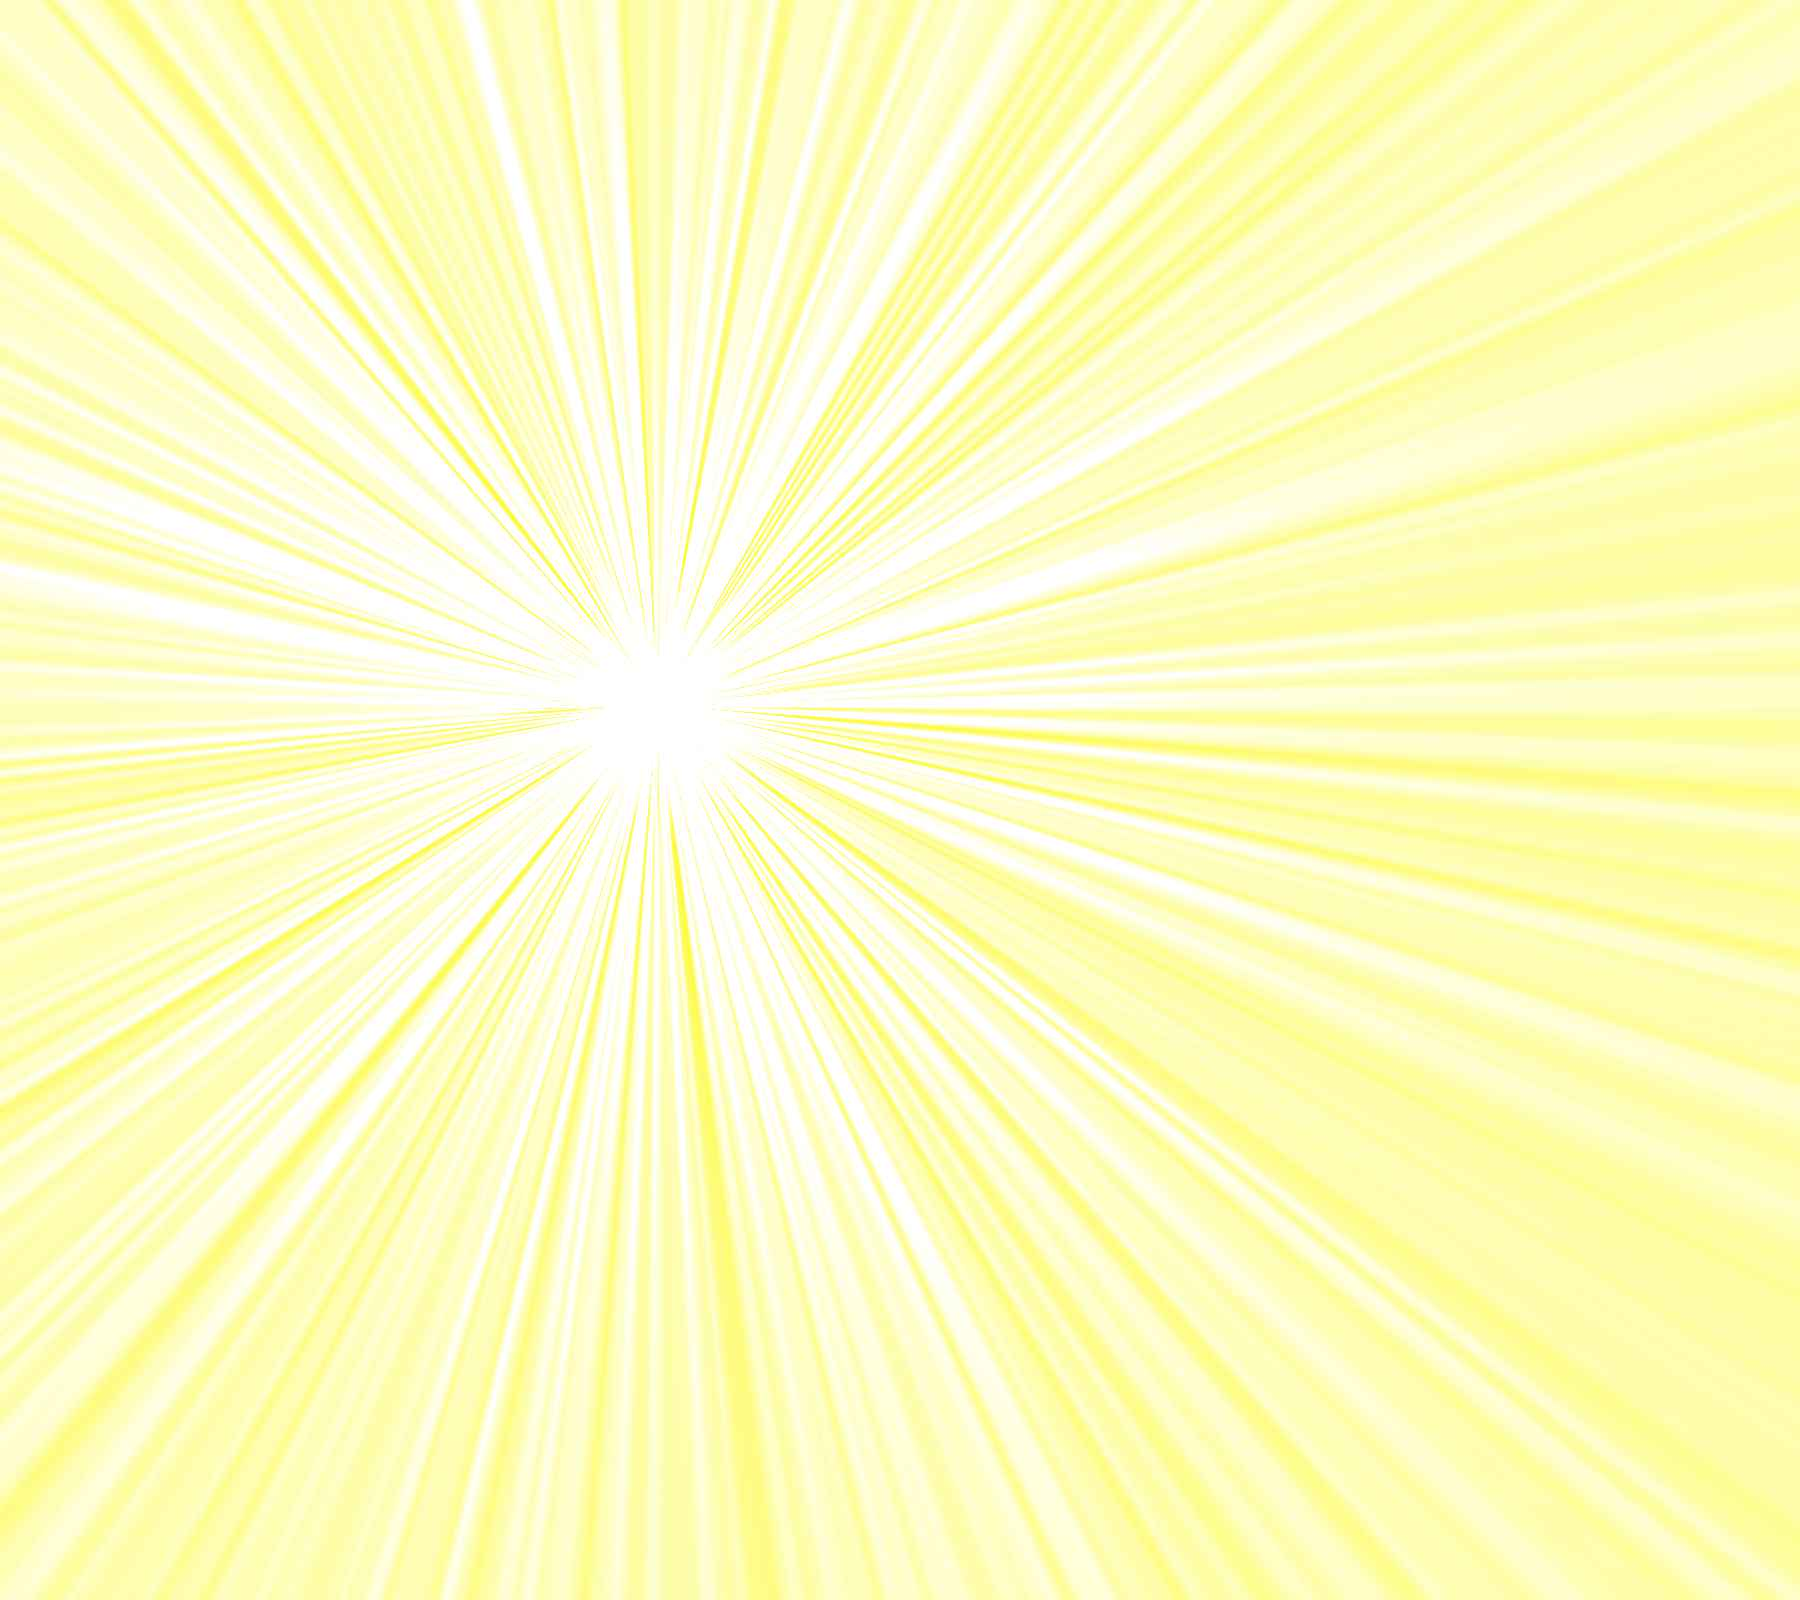 light_yellow_starburst_radiating_lines_background_1800x1600